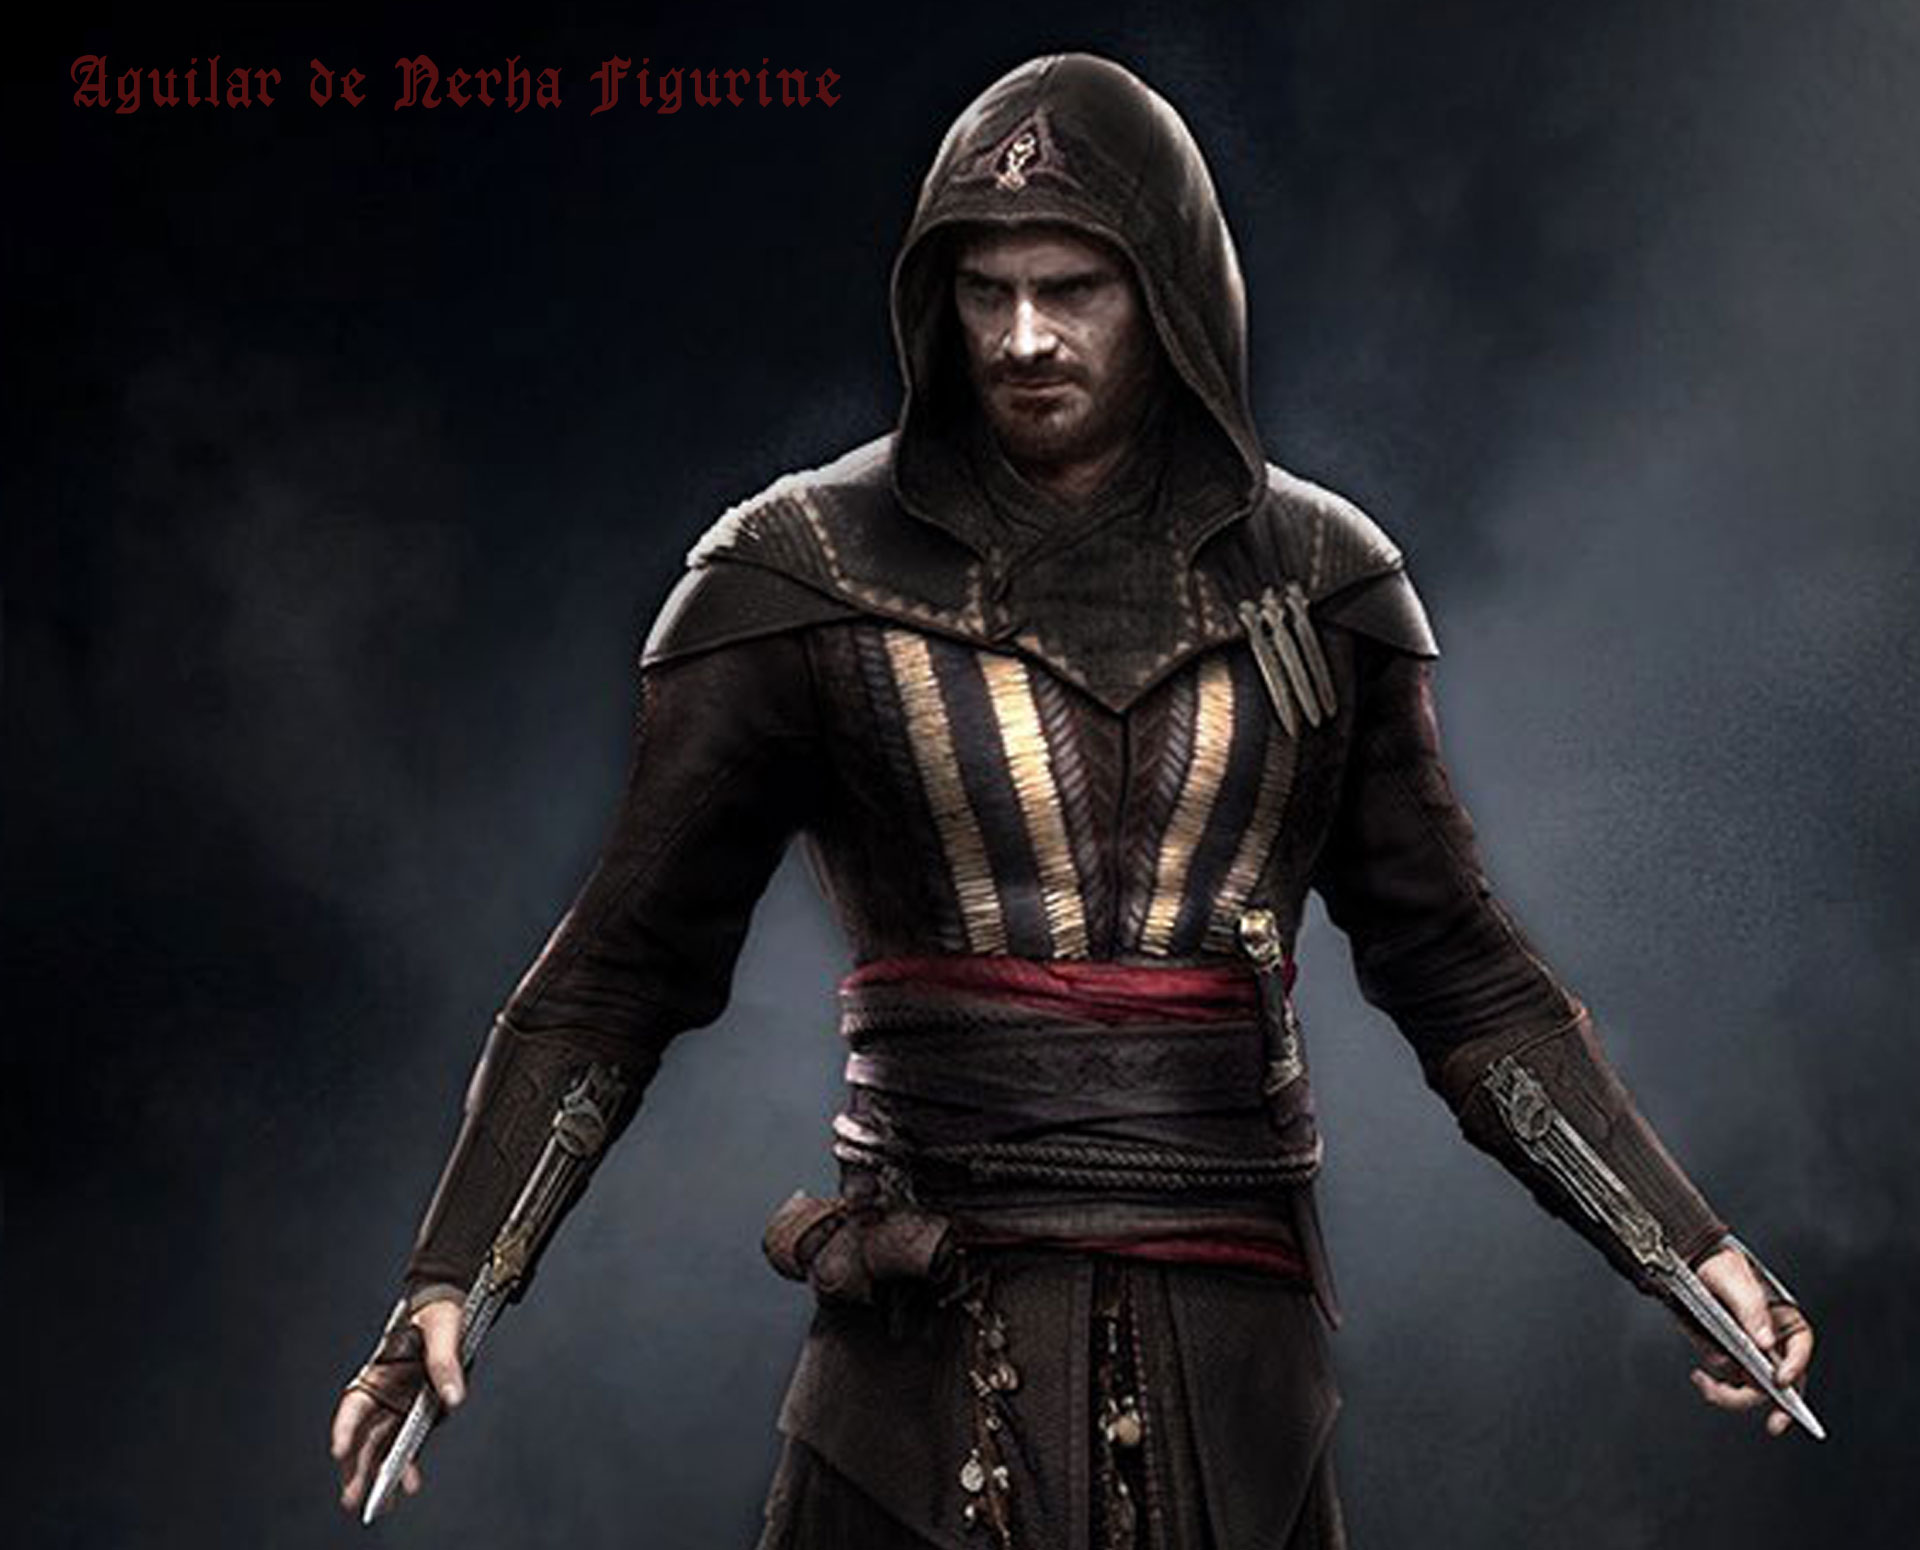 Michael Fassbender Assassin S Creed Figurines